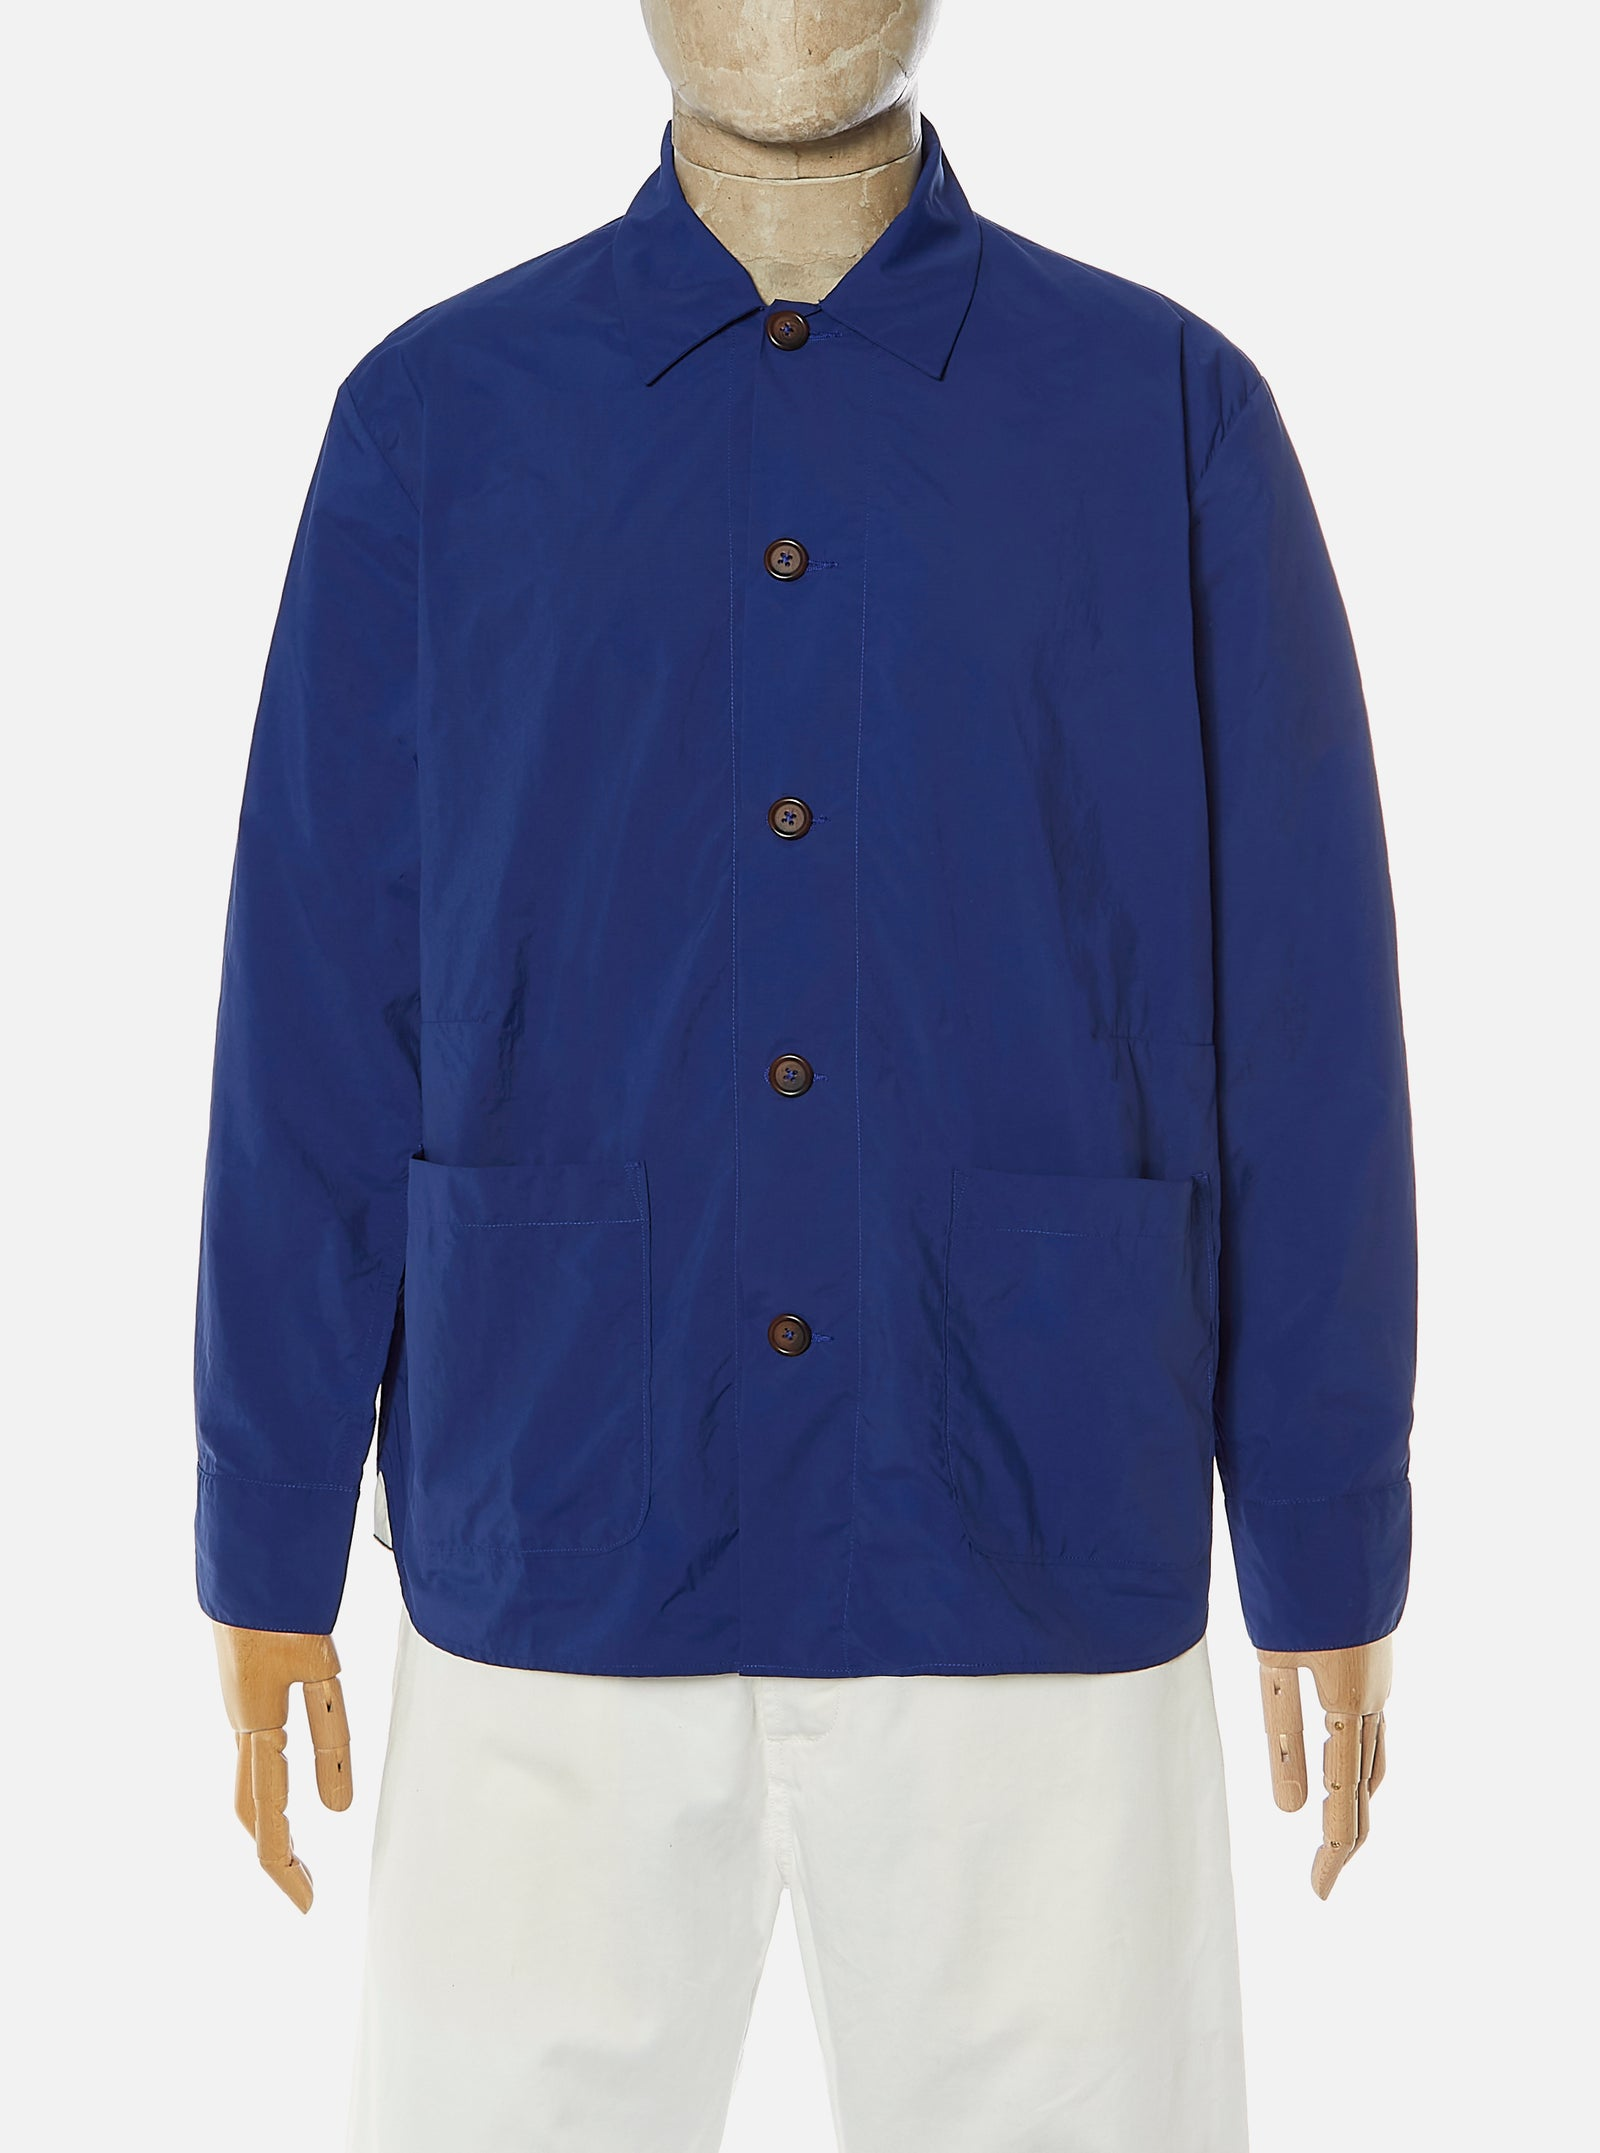 Universal Works Travail Shirt in Blue Recycled Nylon